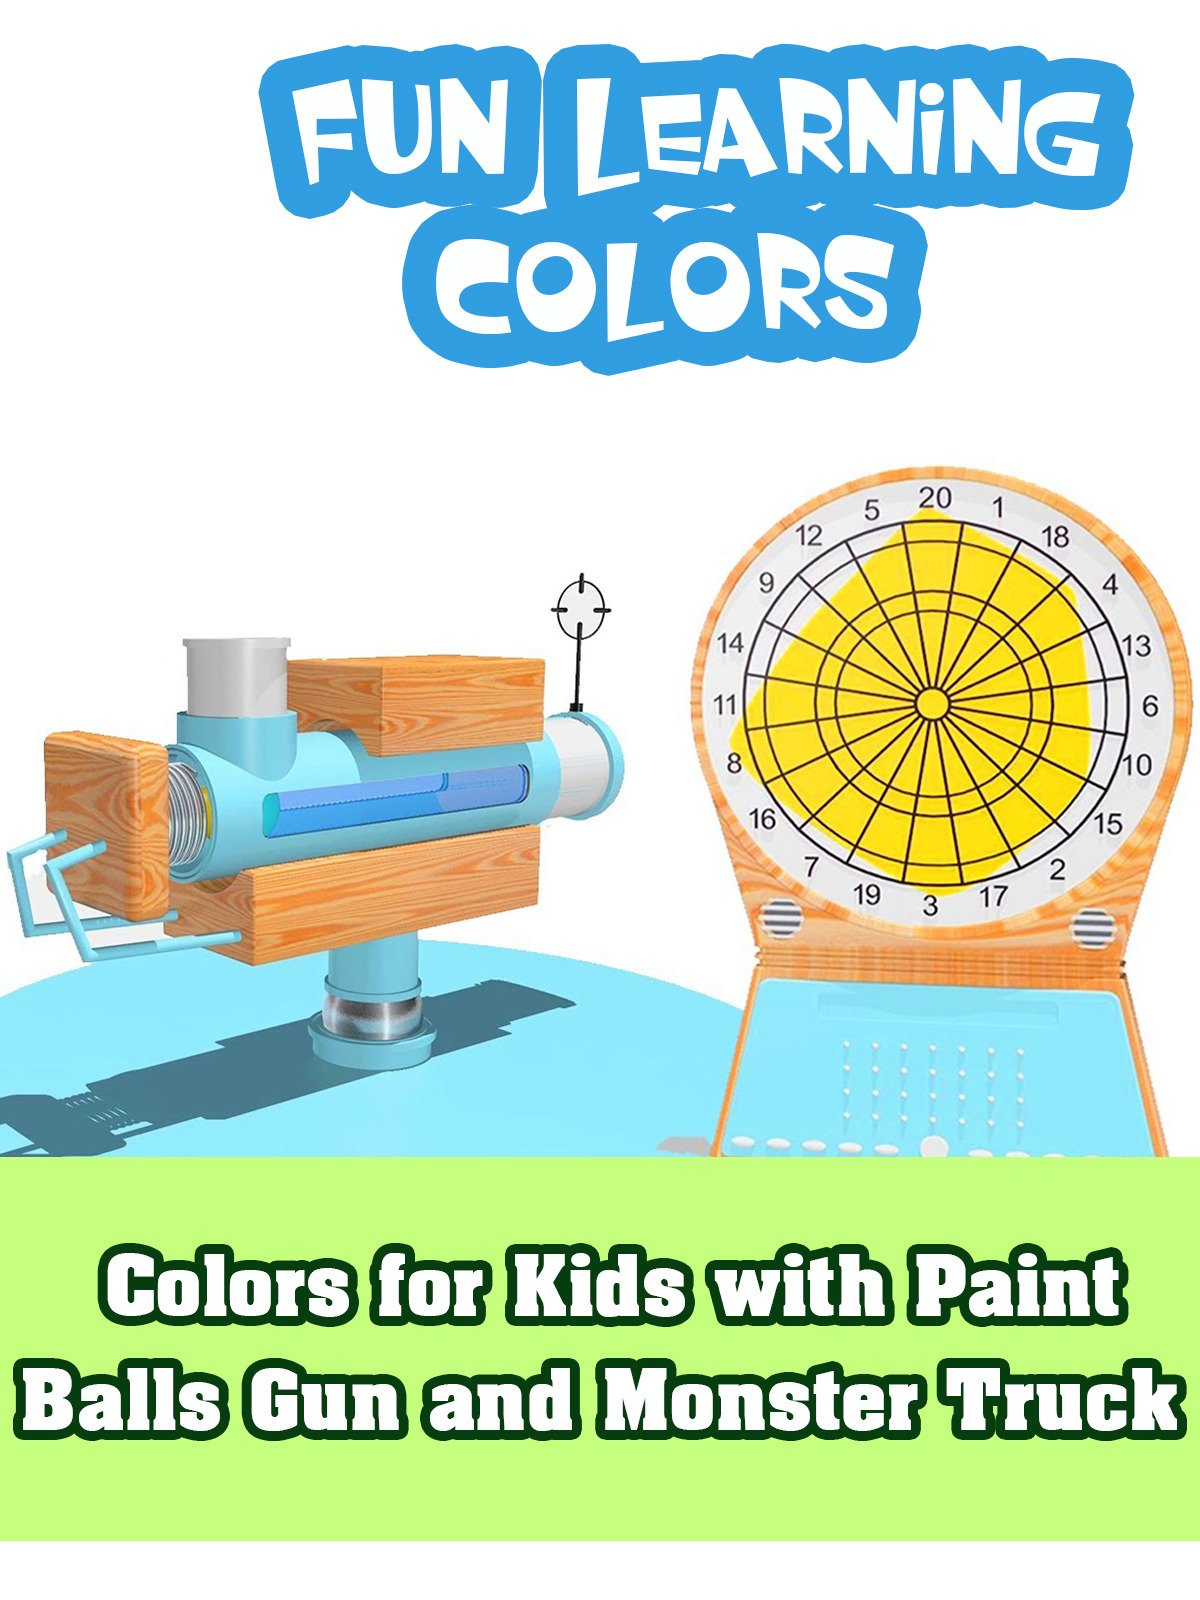 Colors for Kids with Paint Balls Gun and Monster Truck